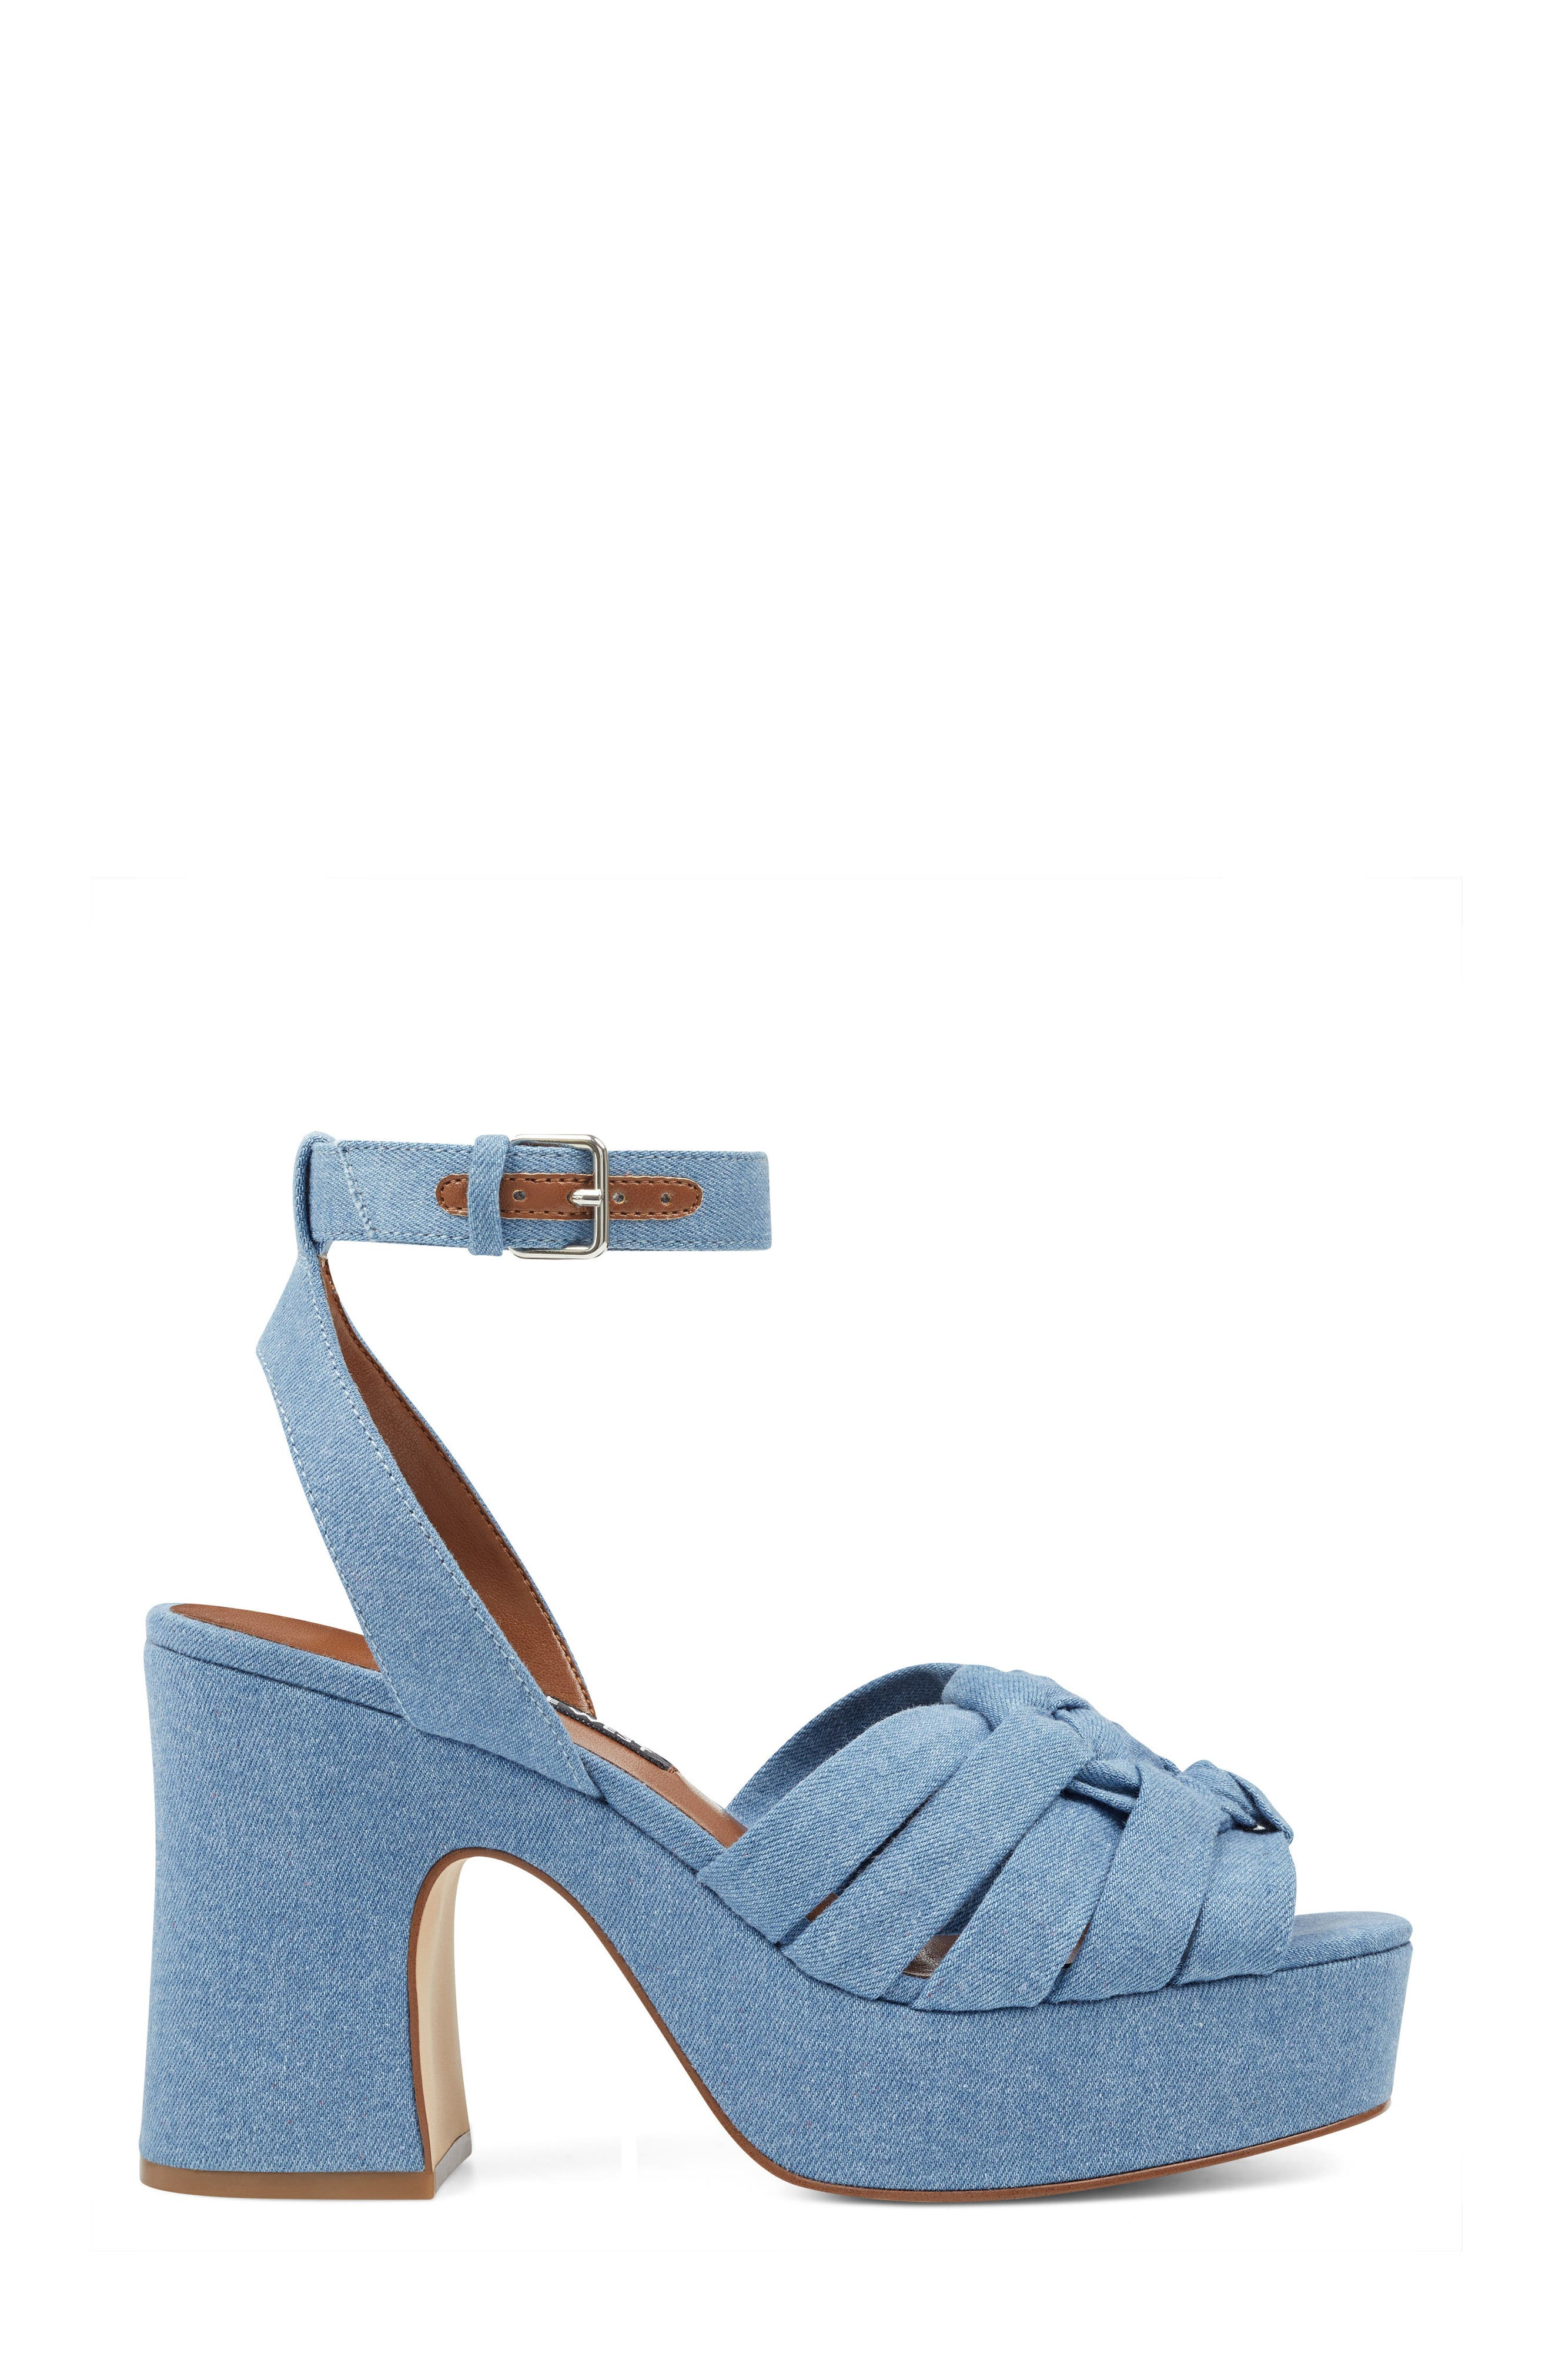 Fetuchini Platform Sandal,                             Alternate thumbnail 3, color,                             Light Blue Denim